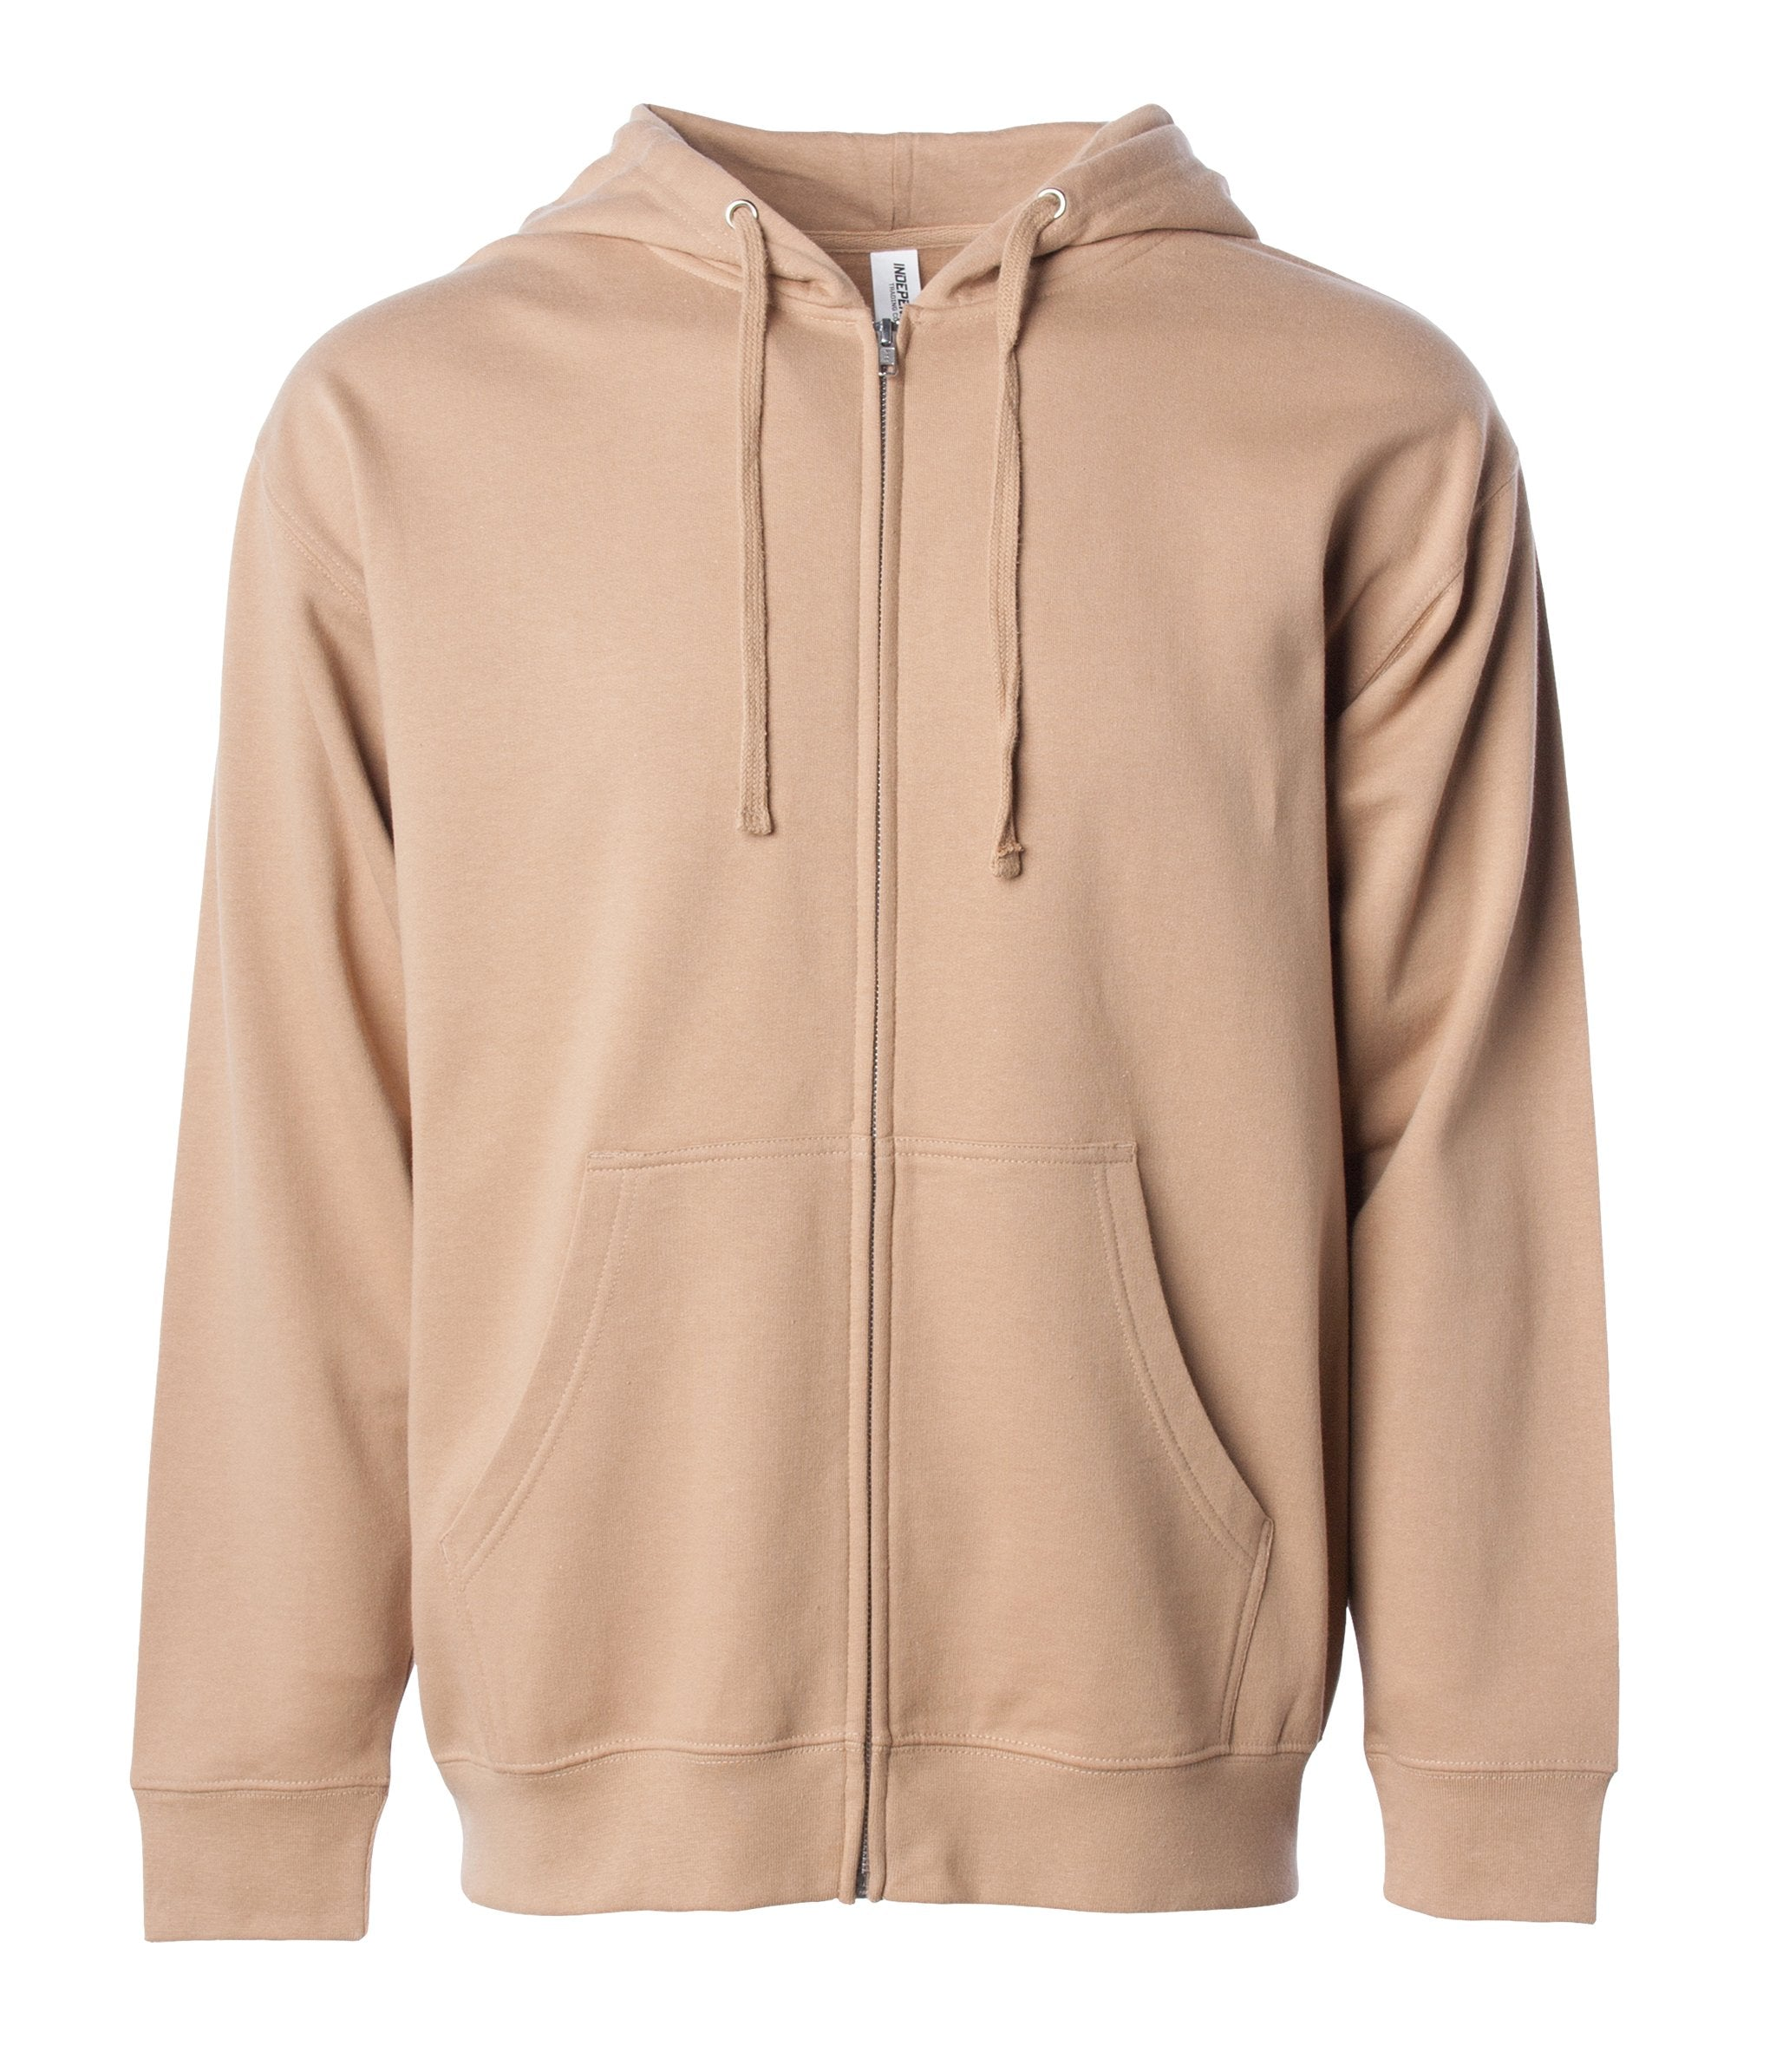 Midweight Zip Hooded Sweatshirt